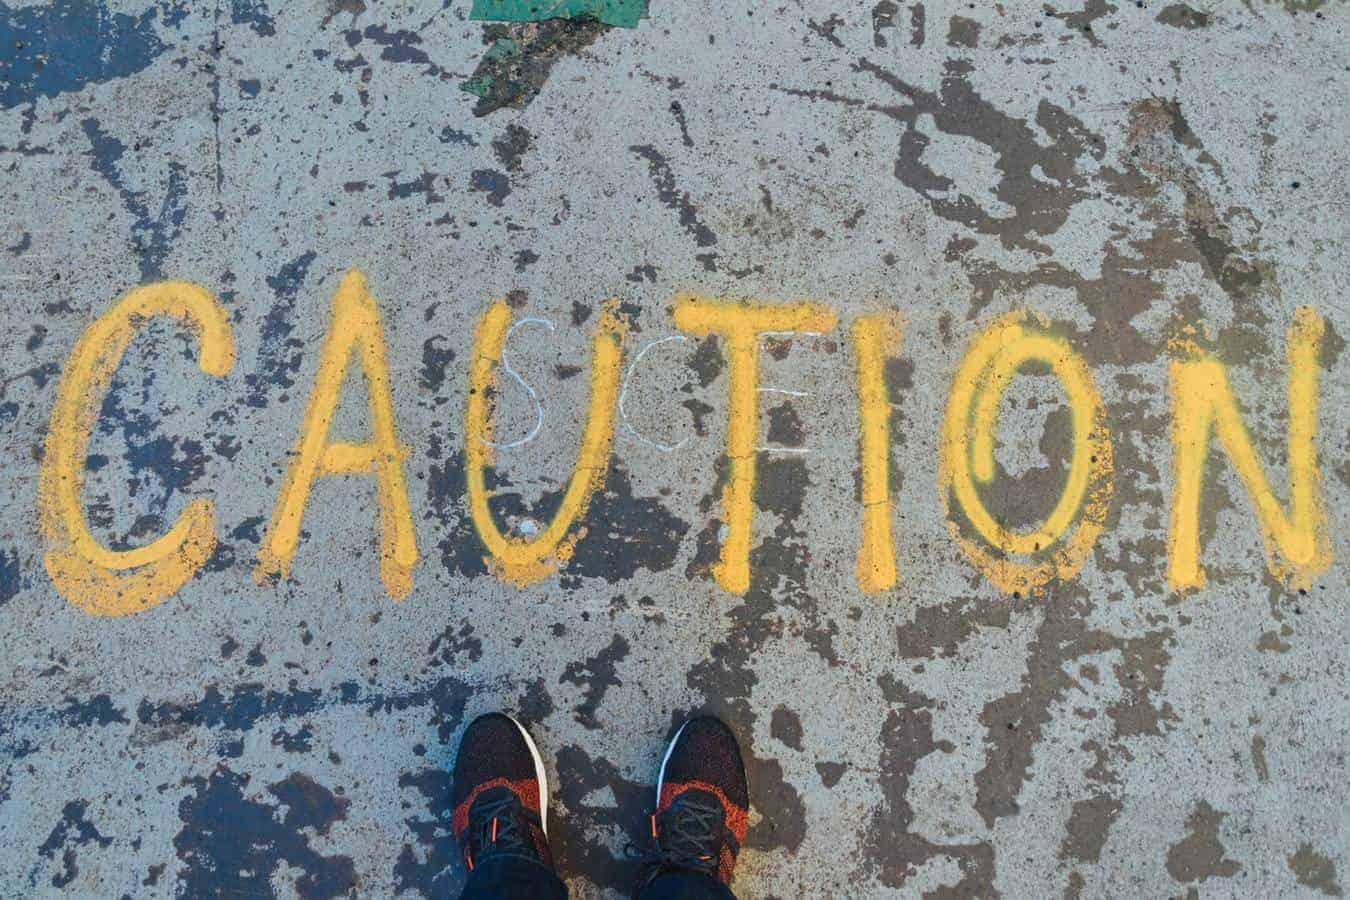 The word 'caution' written on the ground in yellow chalk